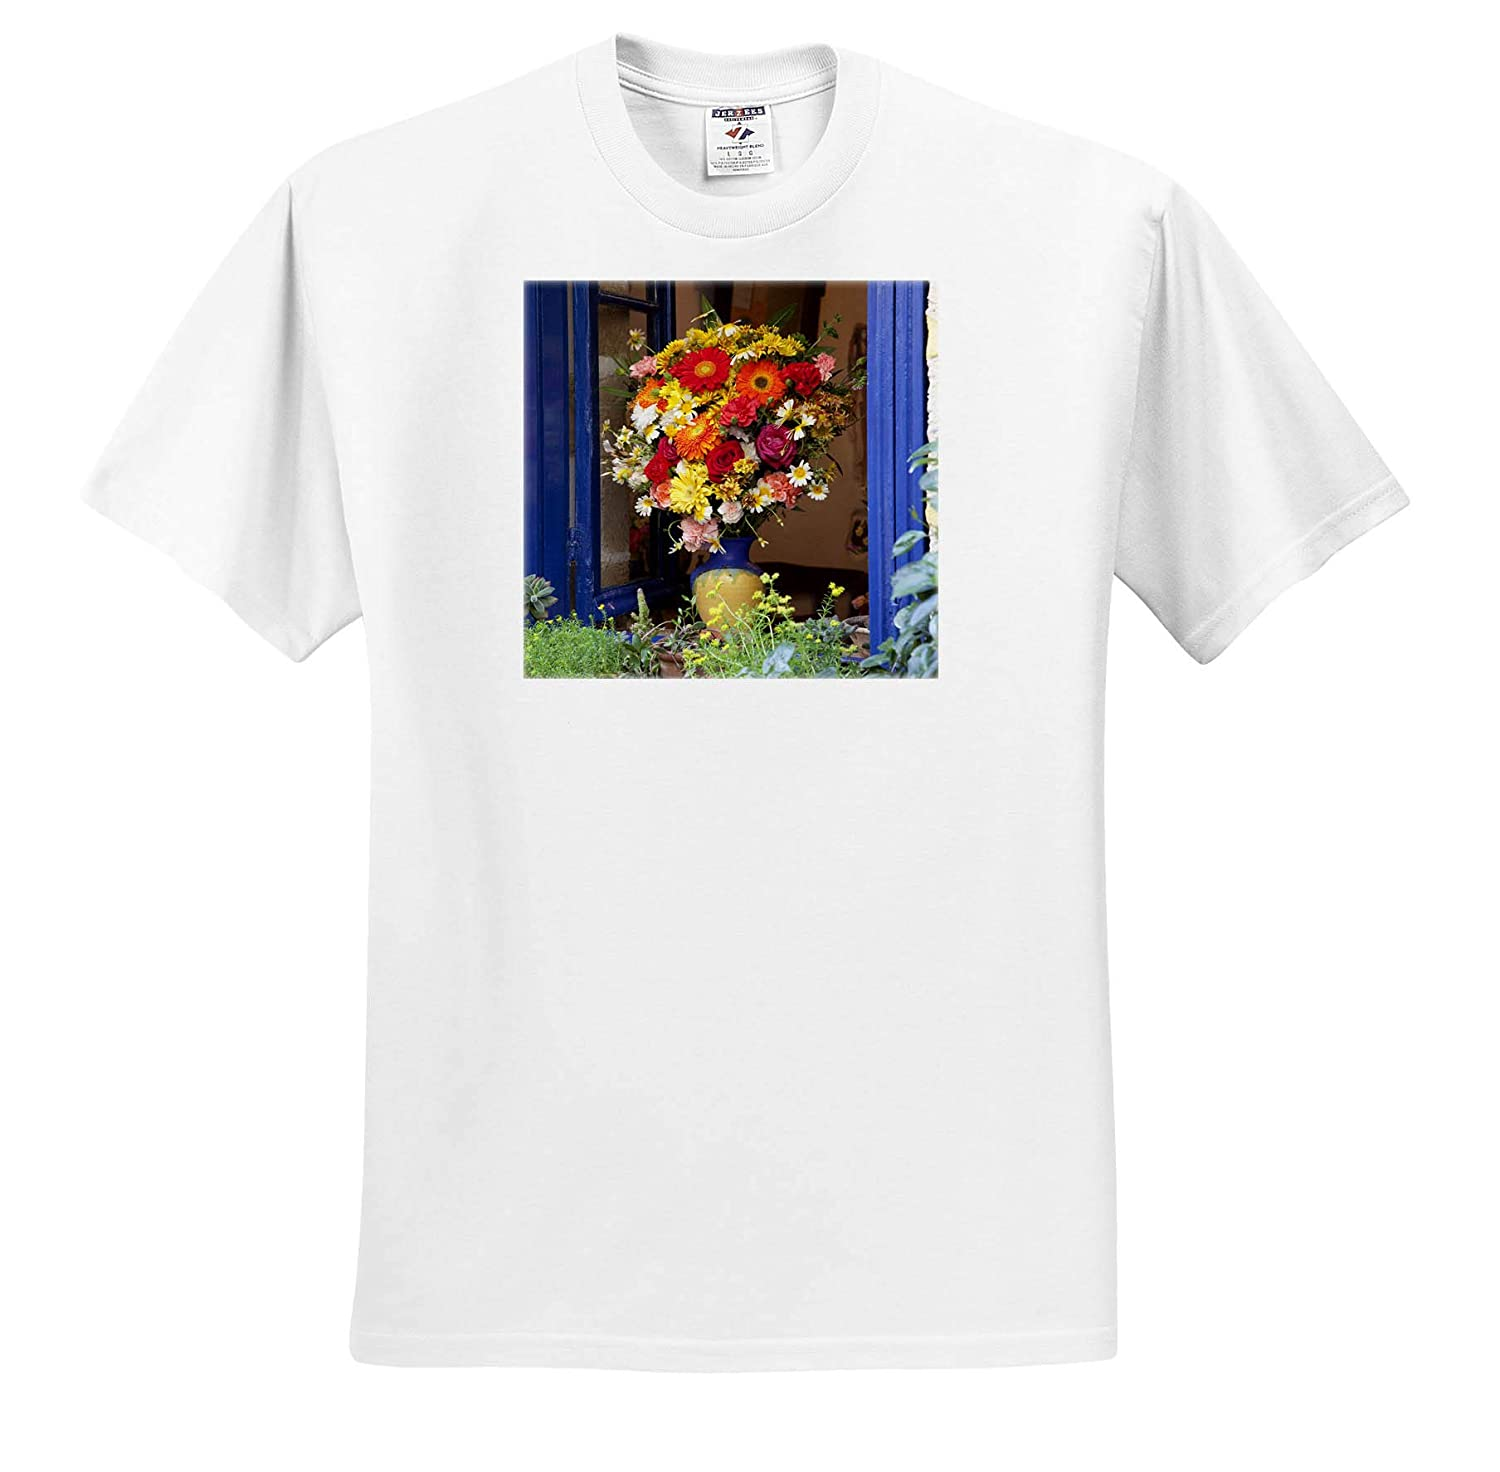 Adult T-Shirt XL ts/_313614 Greece 3dRose Danita Delimont Crete Window with Flowers Flowers